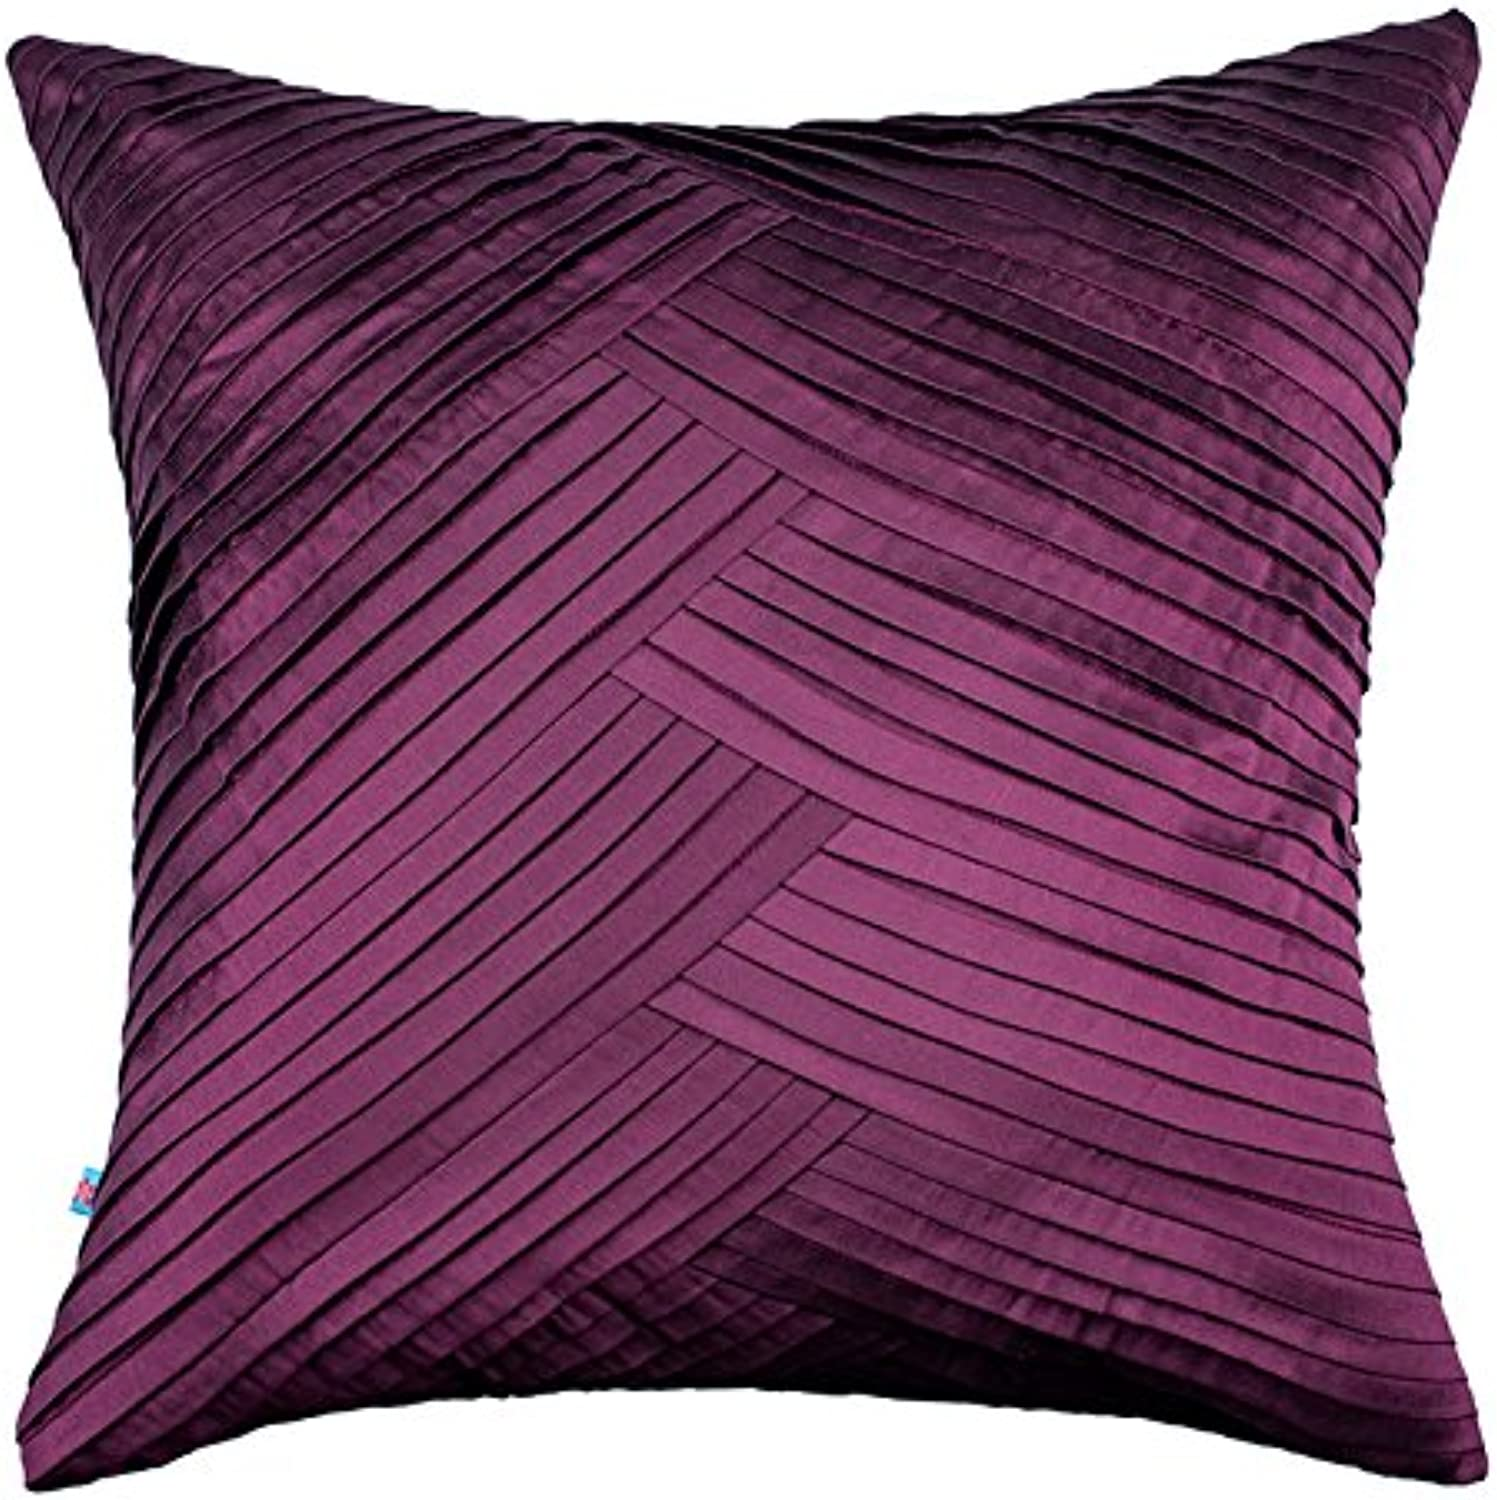 The Pink Champa Modern Soft Fall Textured Decorative Accent Throw Pillow Cover Home, 20x20, Purple Burgundy Plum